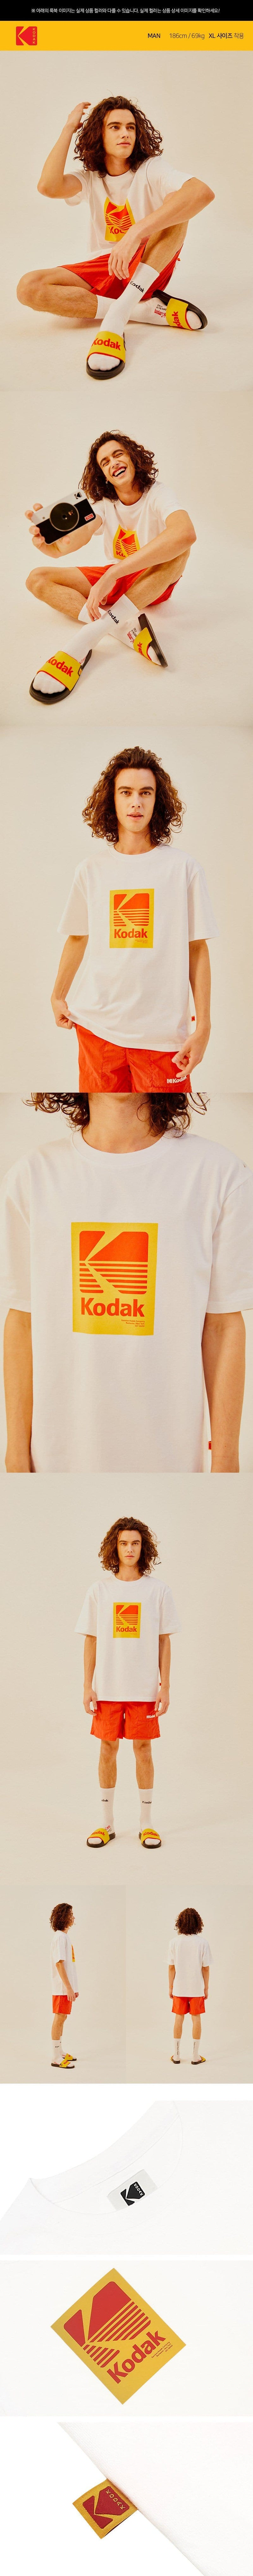 Kodak Apparel Yellow Red Big Logo Classic Oversized T-shirt White styleupk